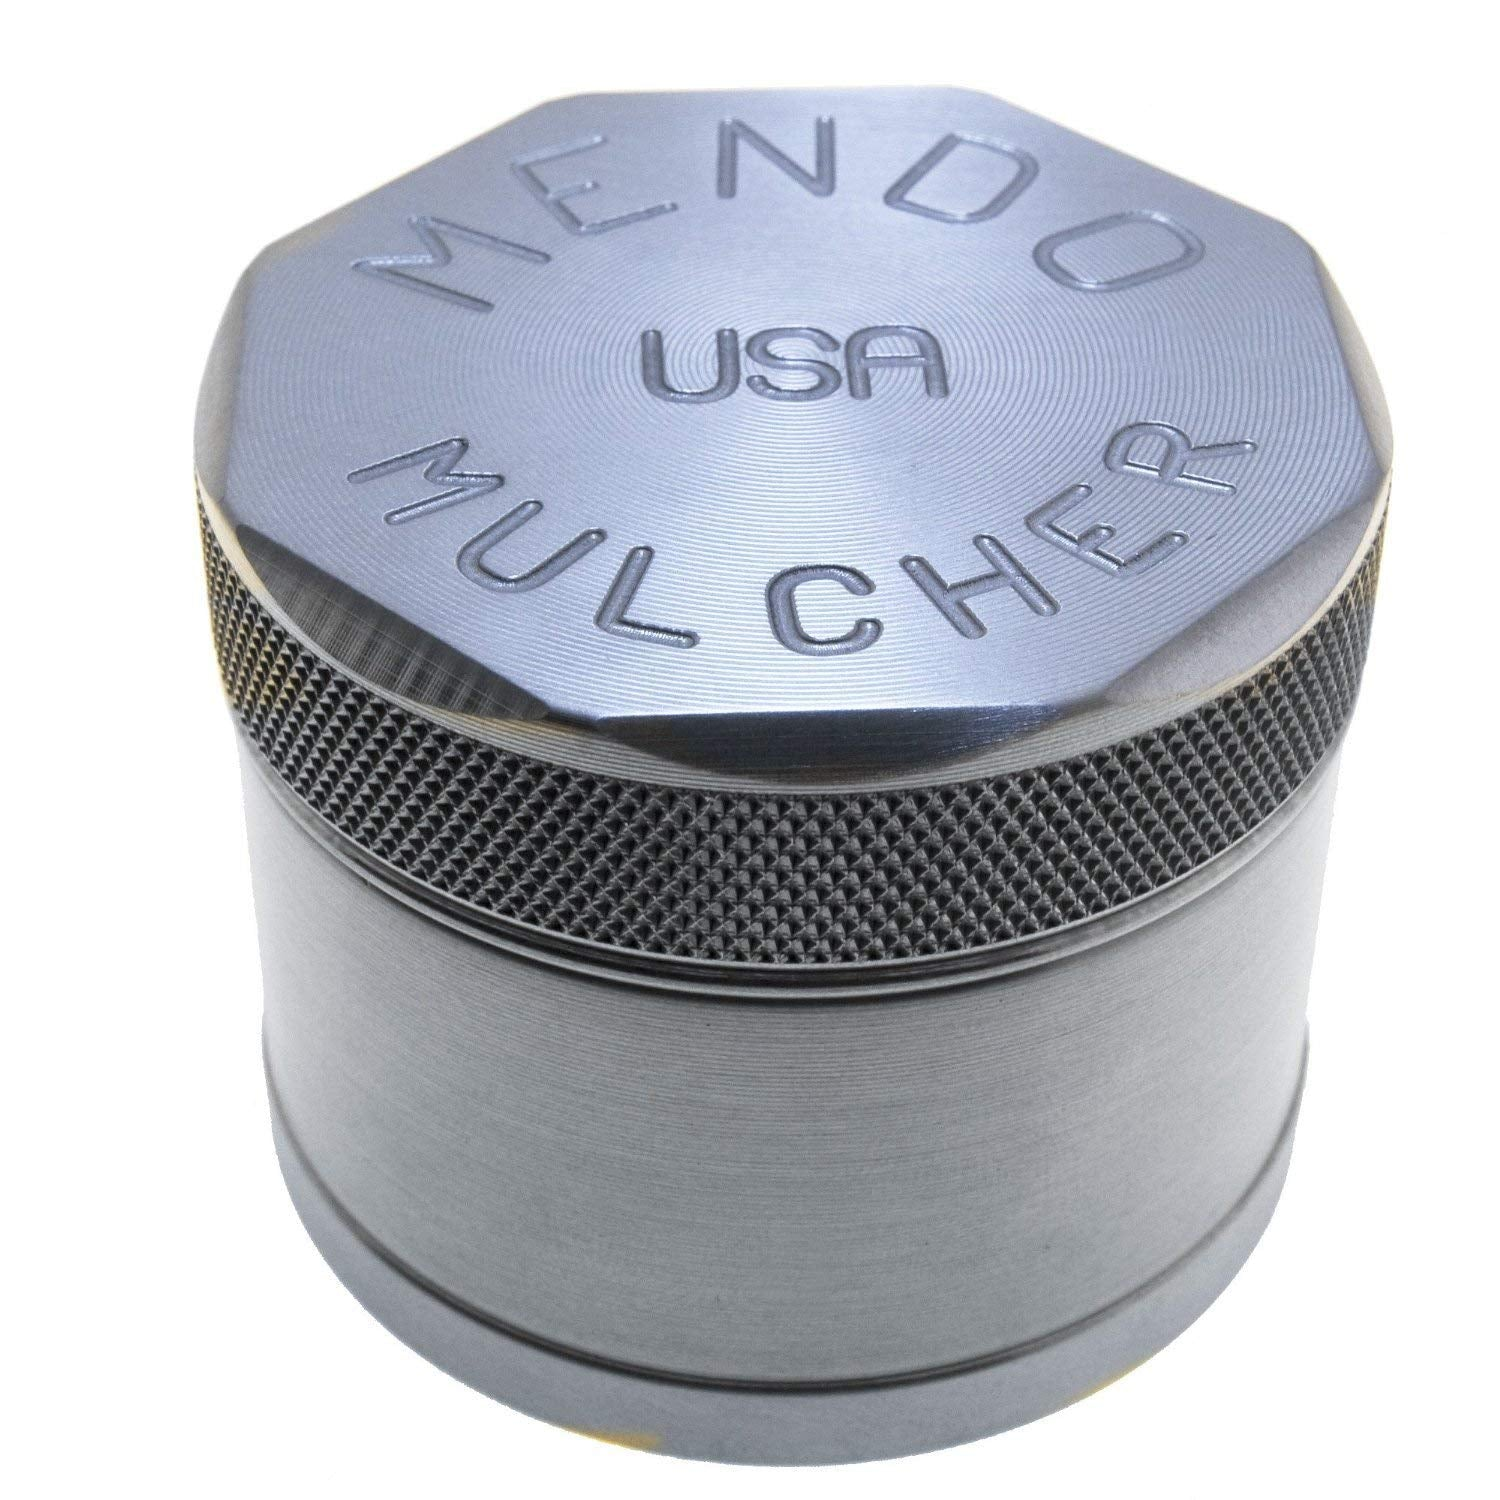 "Mendo Mulcher 1.75"" 4 Piece Grip Edge Grinder"